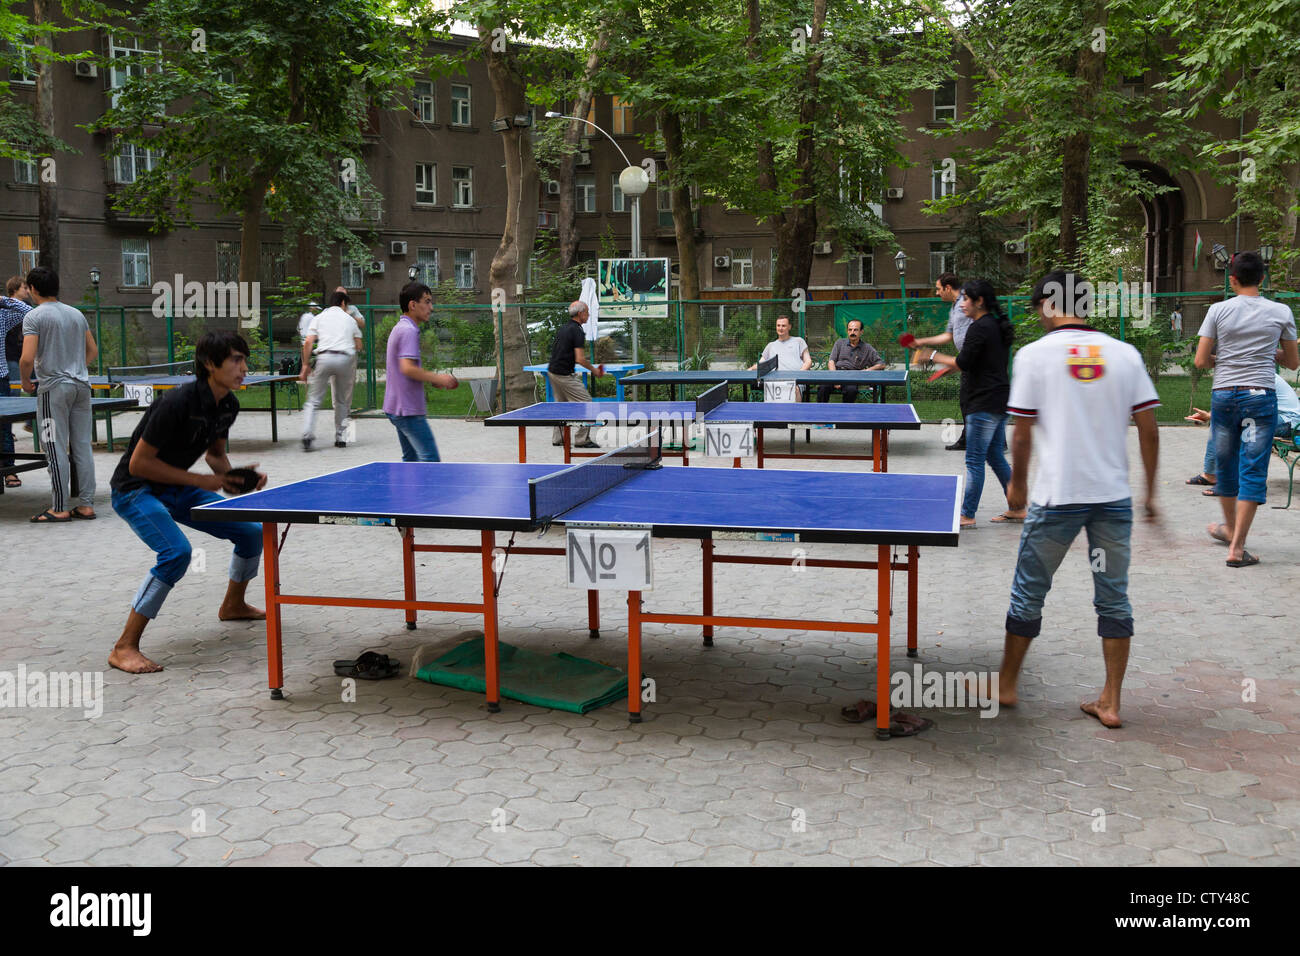 Youths Playing Table Tennis On Outdoor Tables In Dushanbe